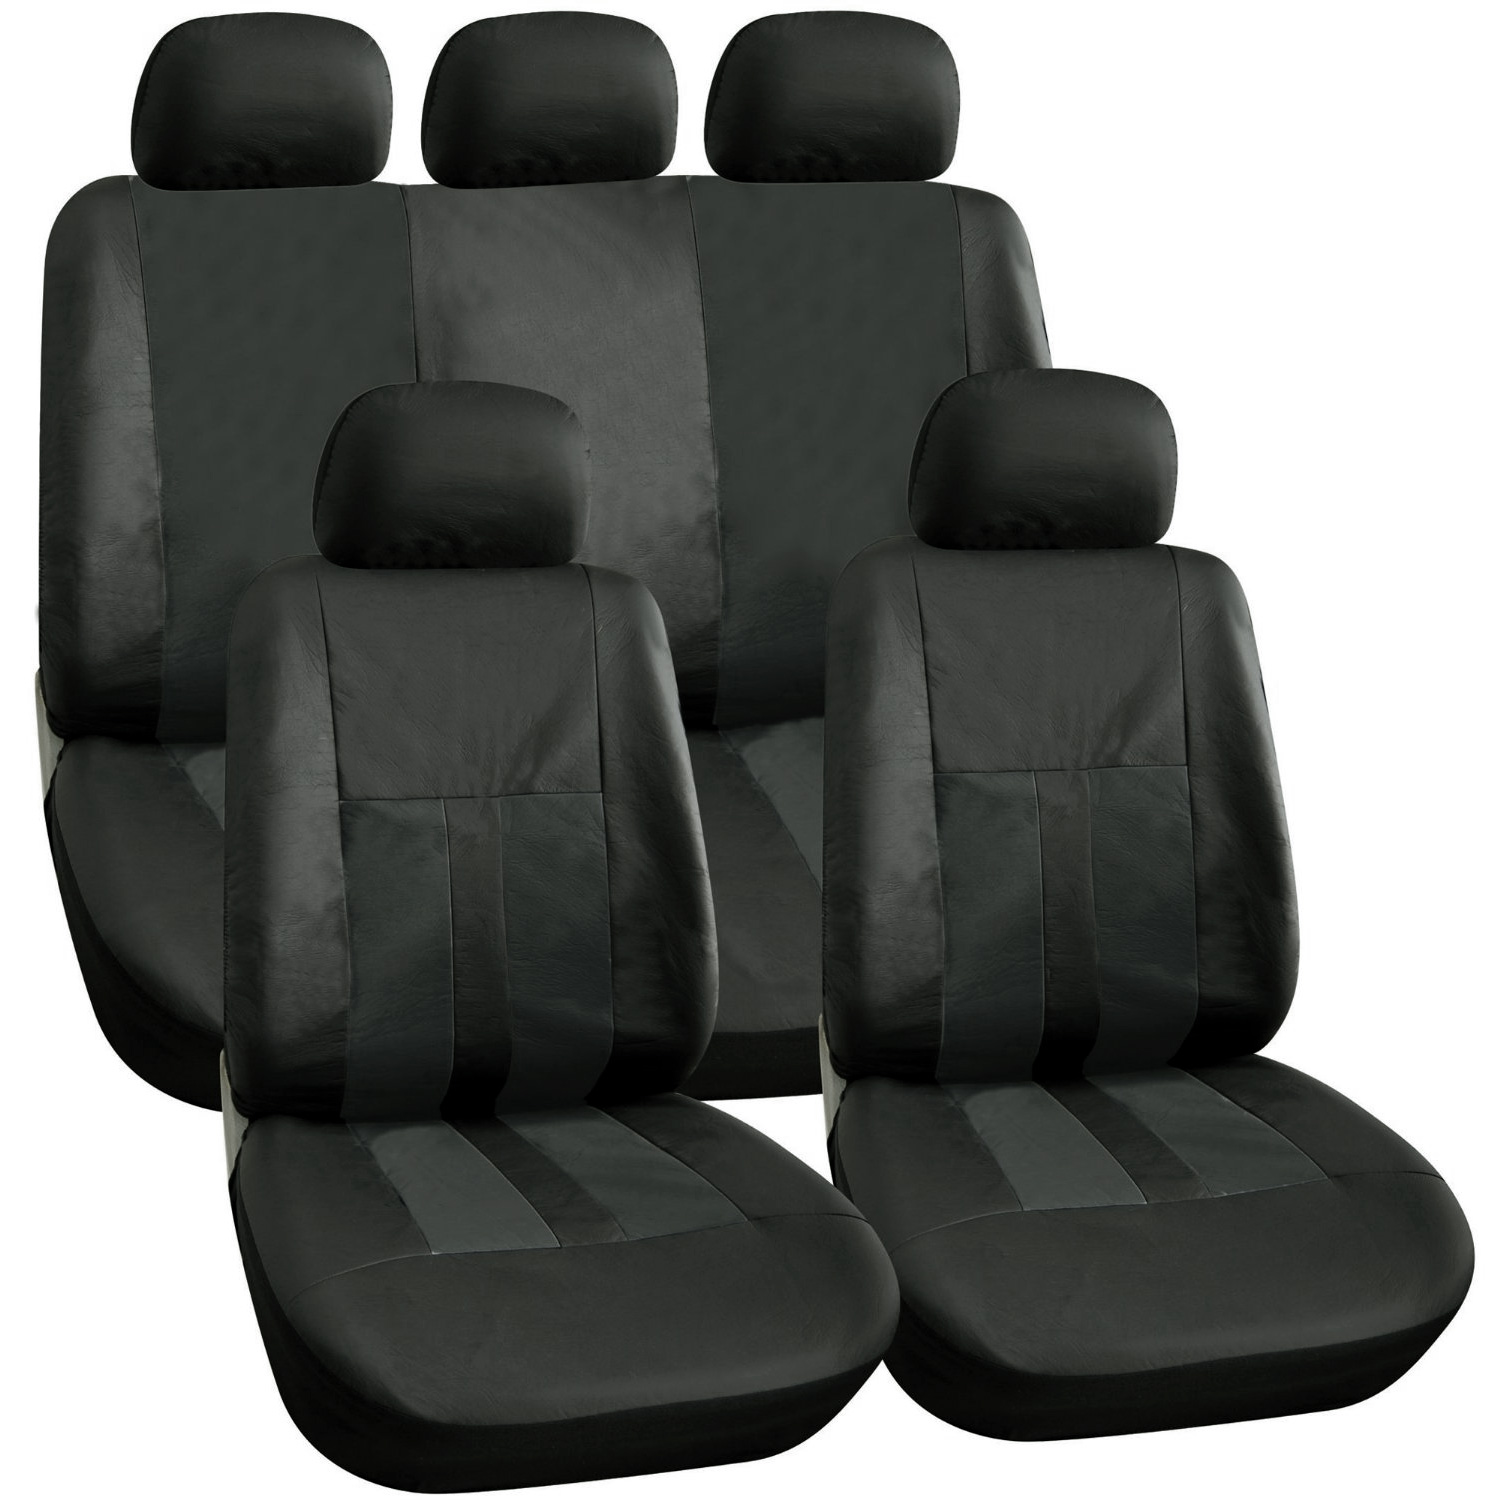 BLACK LEATHER LOOK CAR SEAT COVERS SET STEERING WHEEL